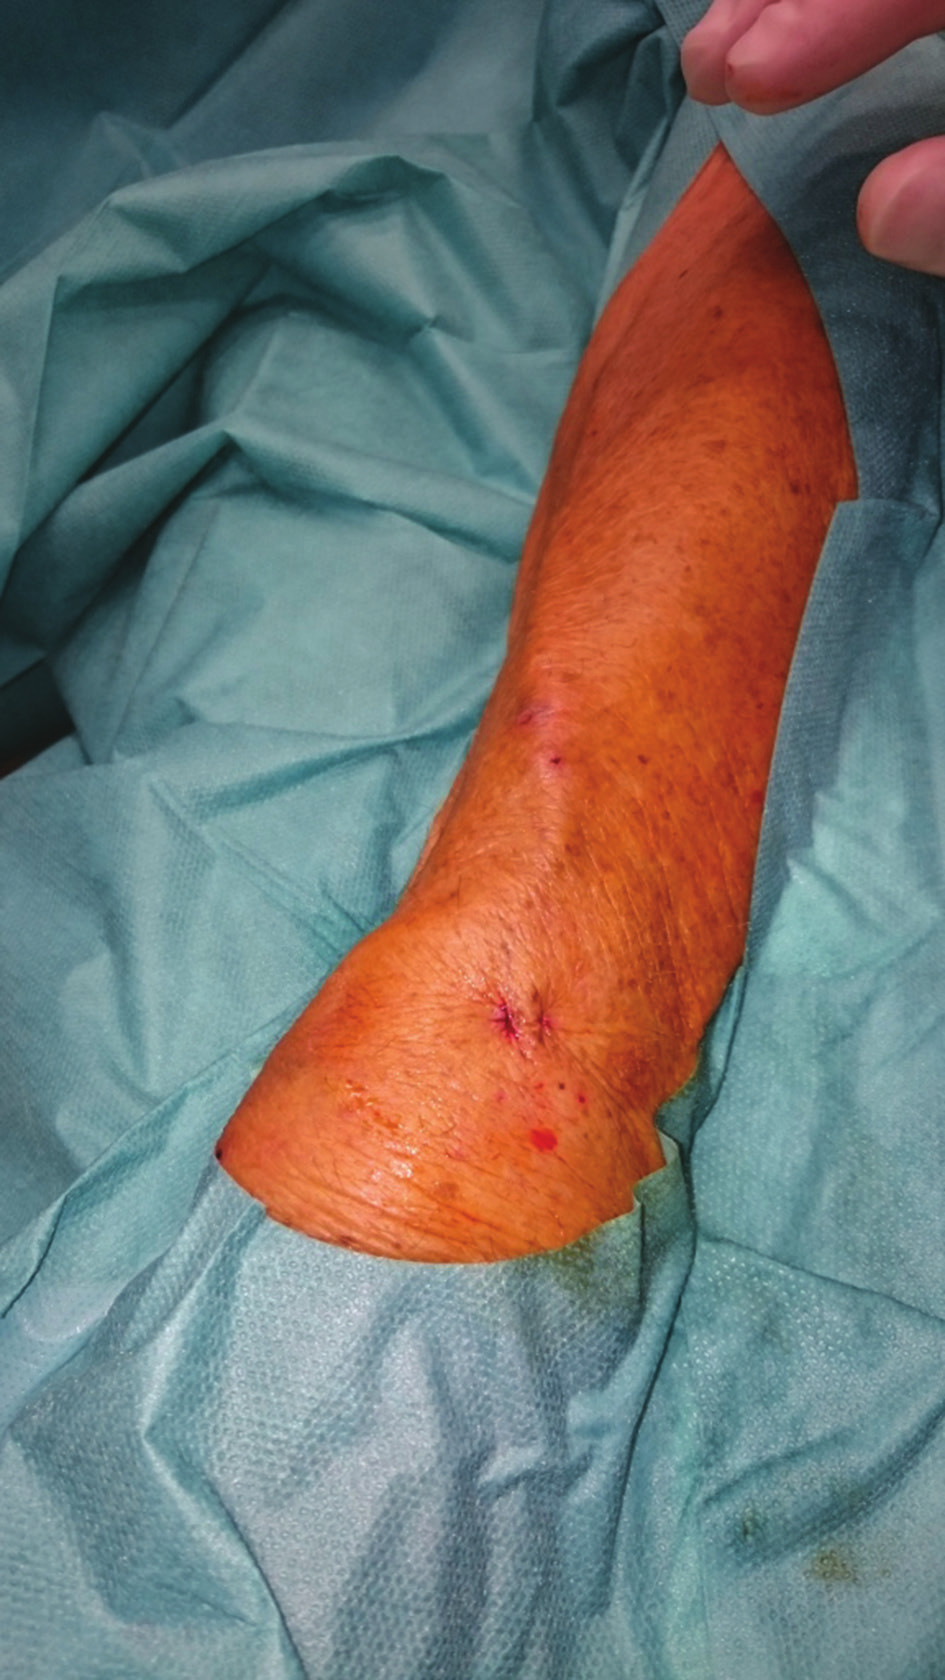 Výsledný stav na předloktí ihned po výkonu